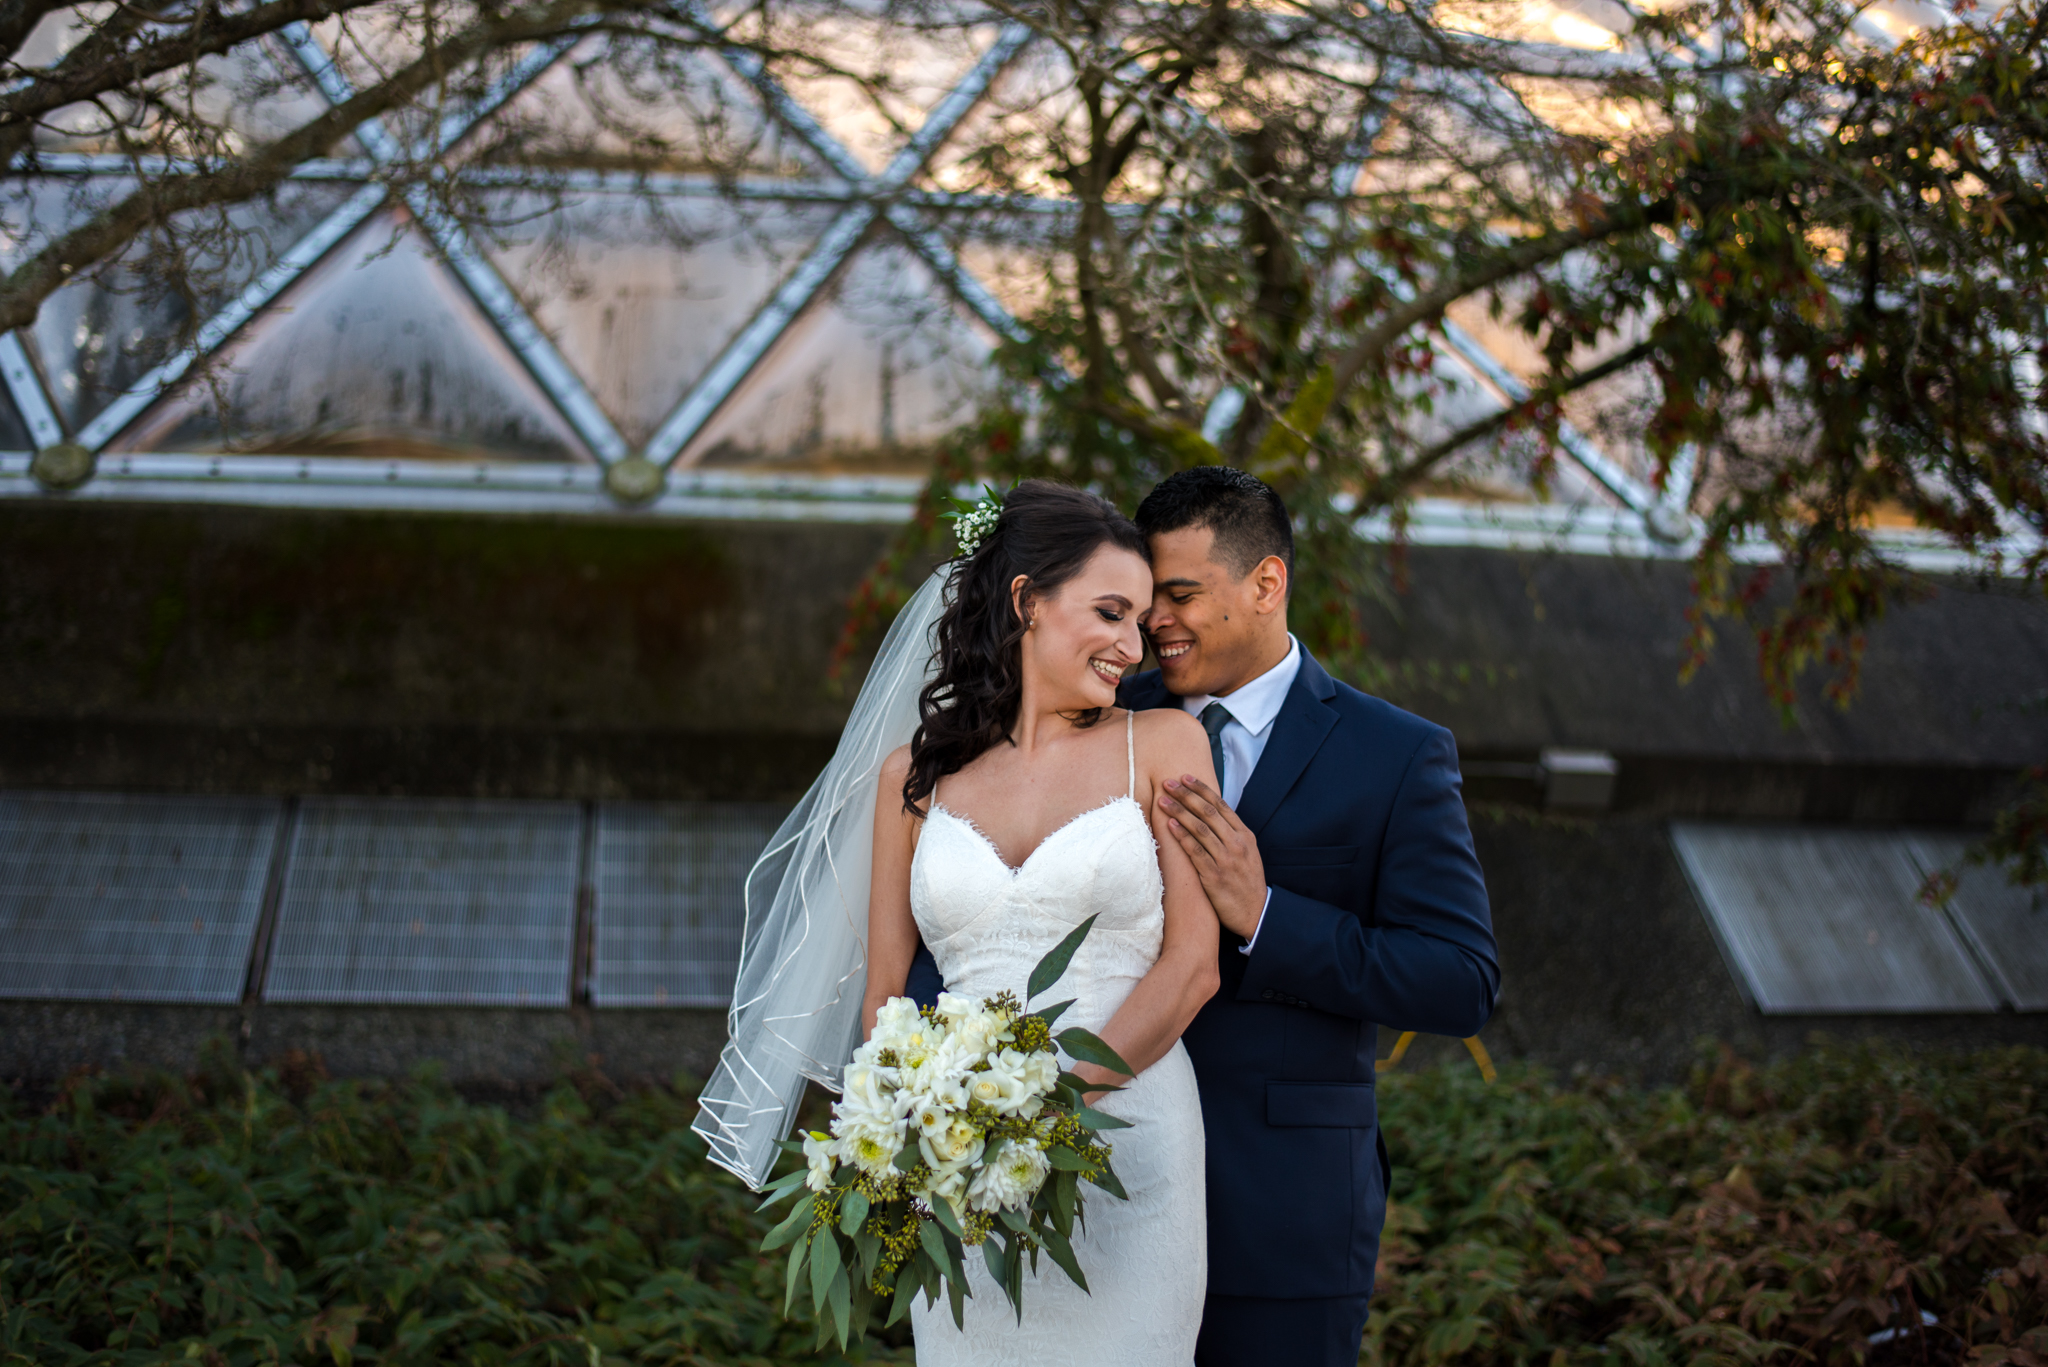 Queen Elizabeth Park Wedding Photographer-20.jpg